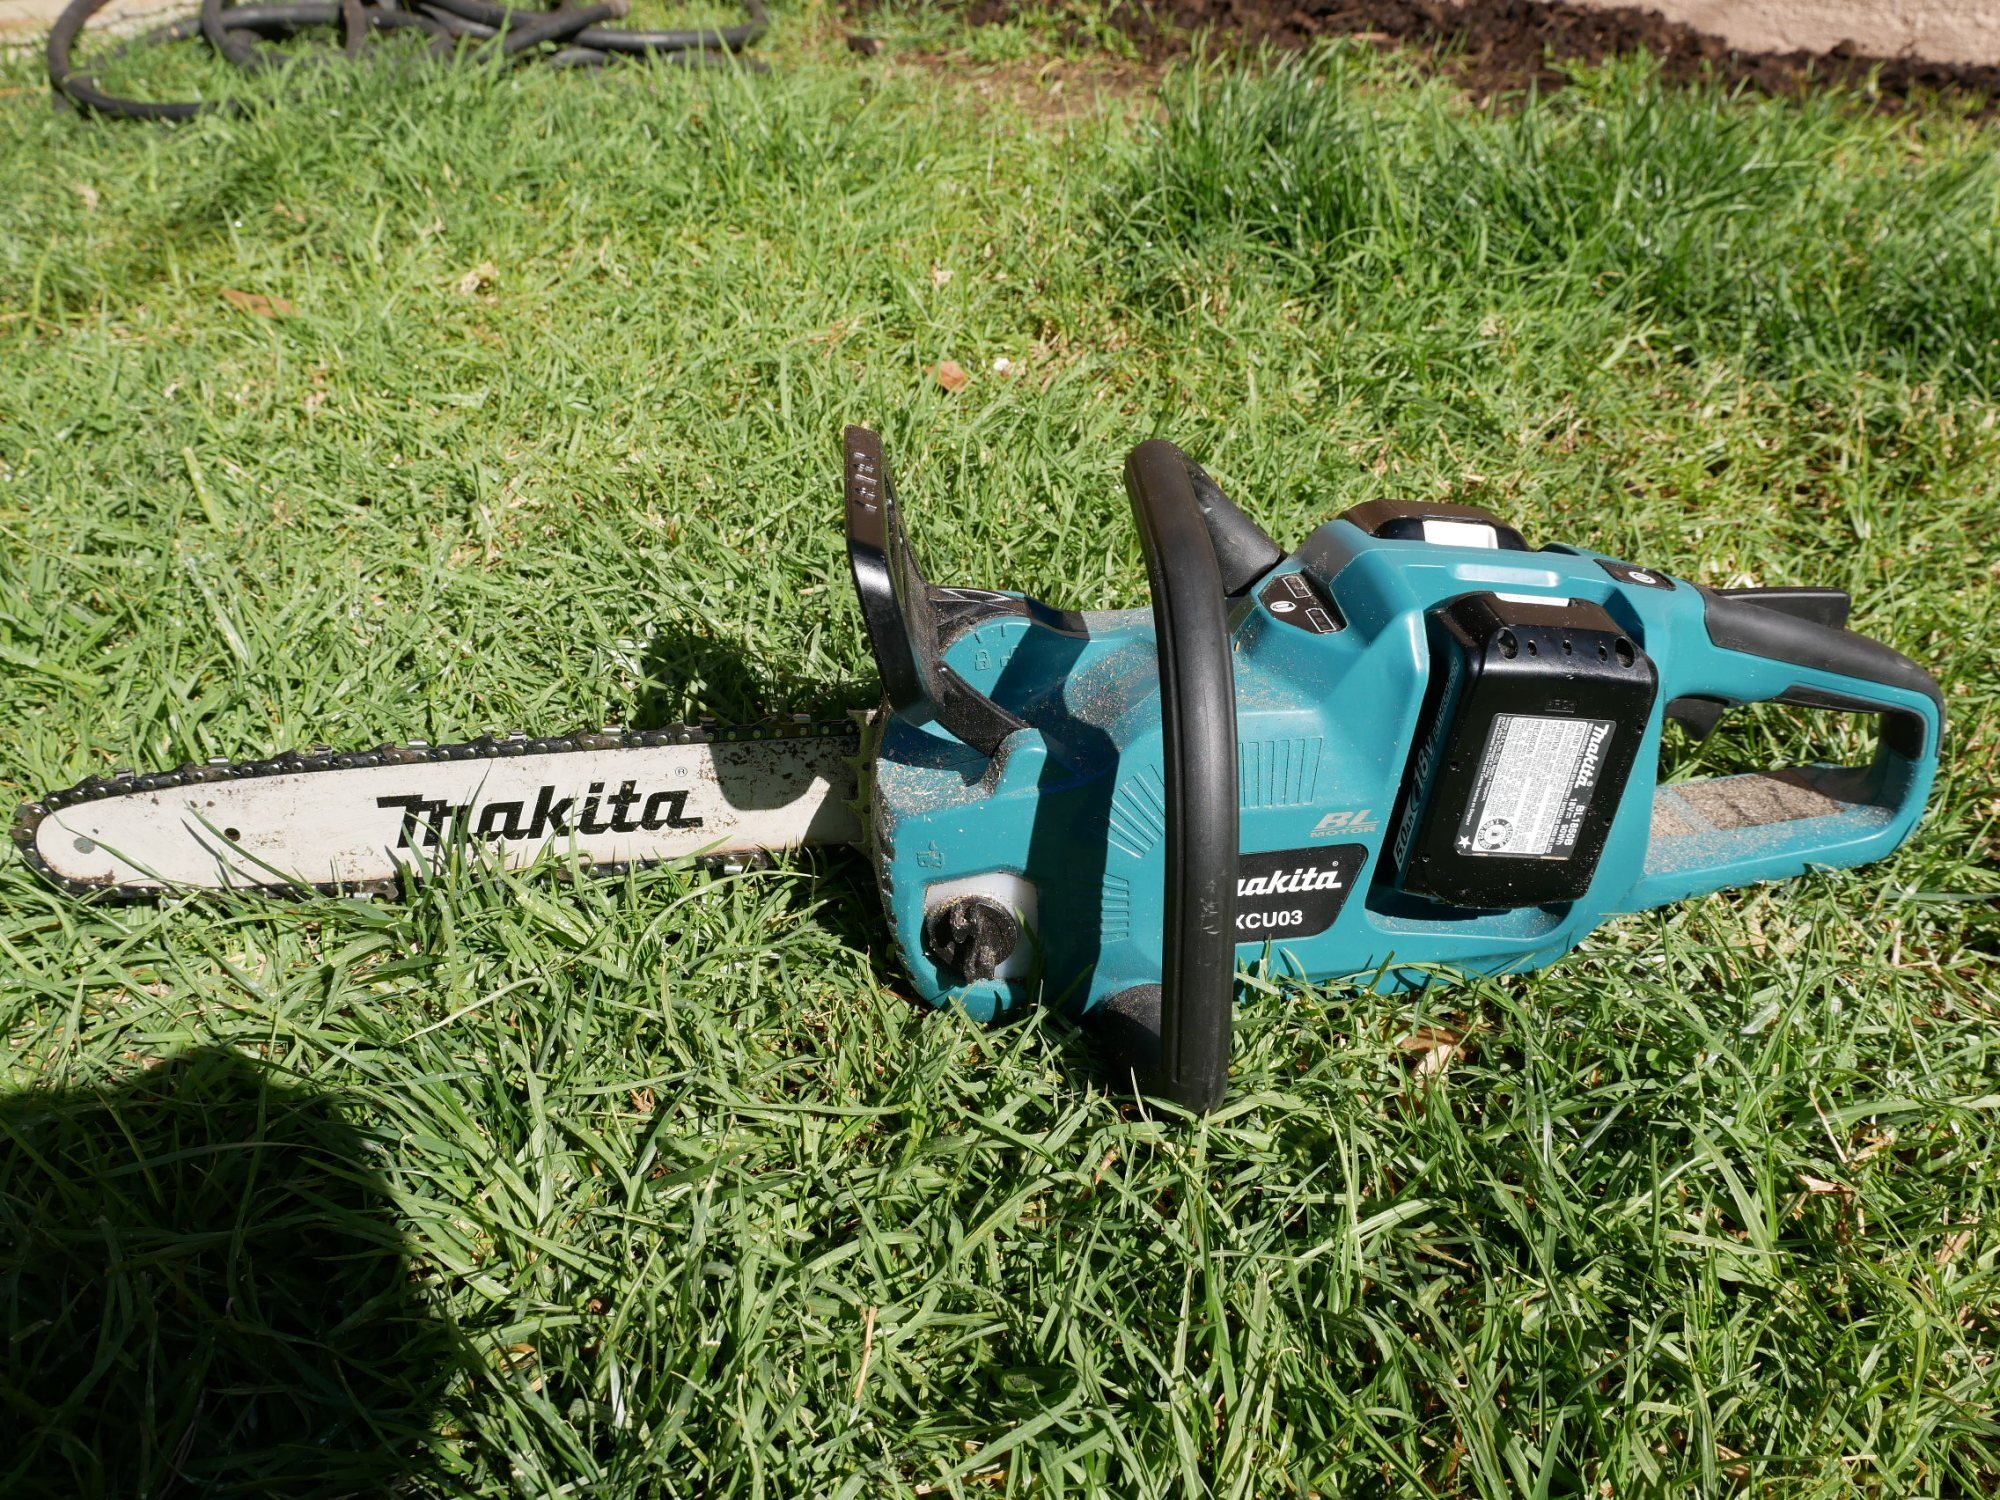 hight resolution of this is the third in a series of makita x2 ope reviews that started with the x2 string trimmer xru09pt and x2 brushless blower xbu02z